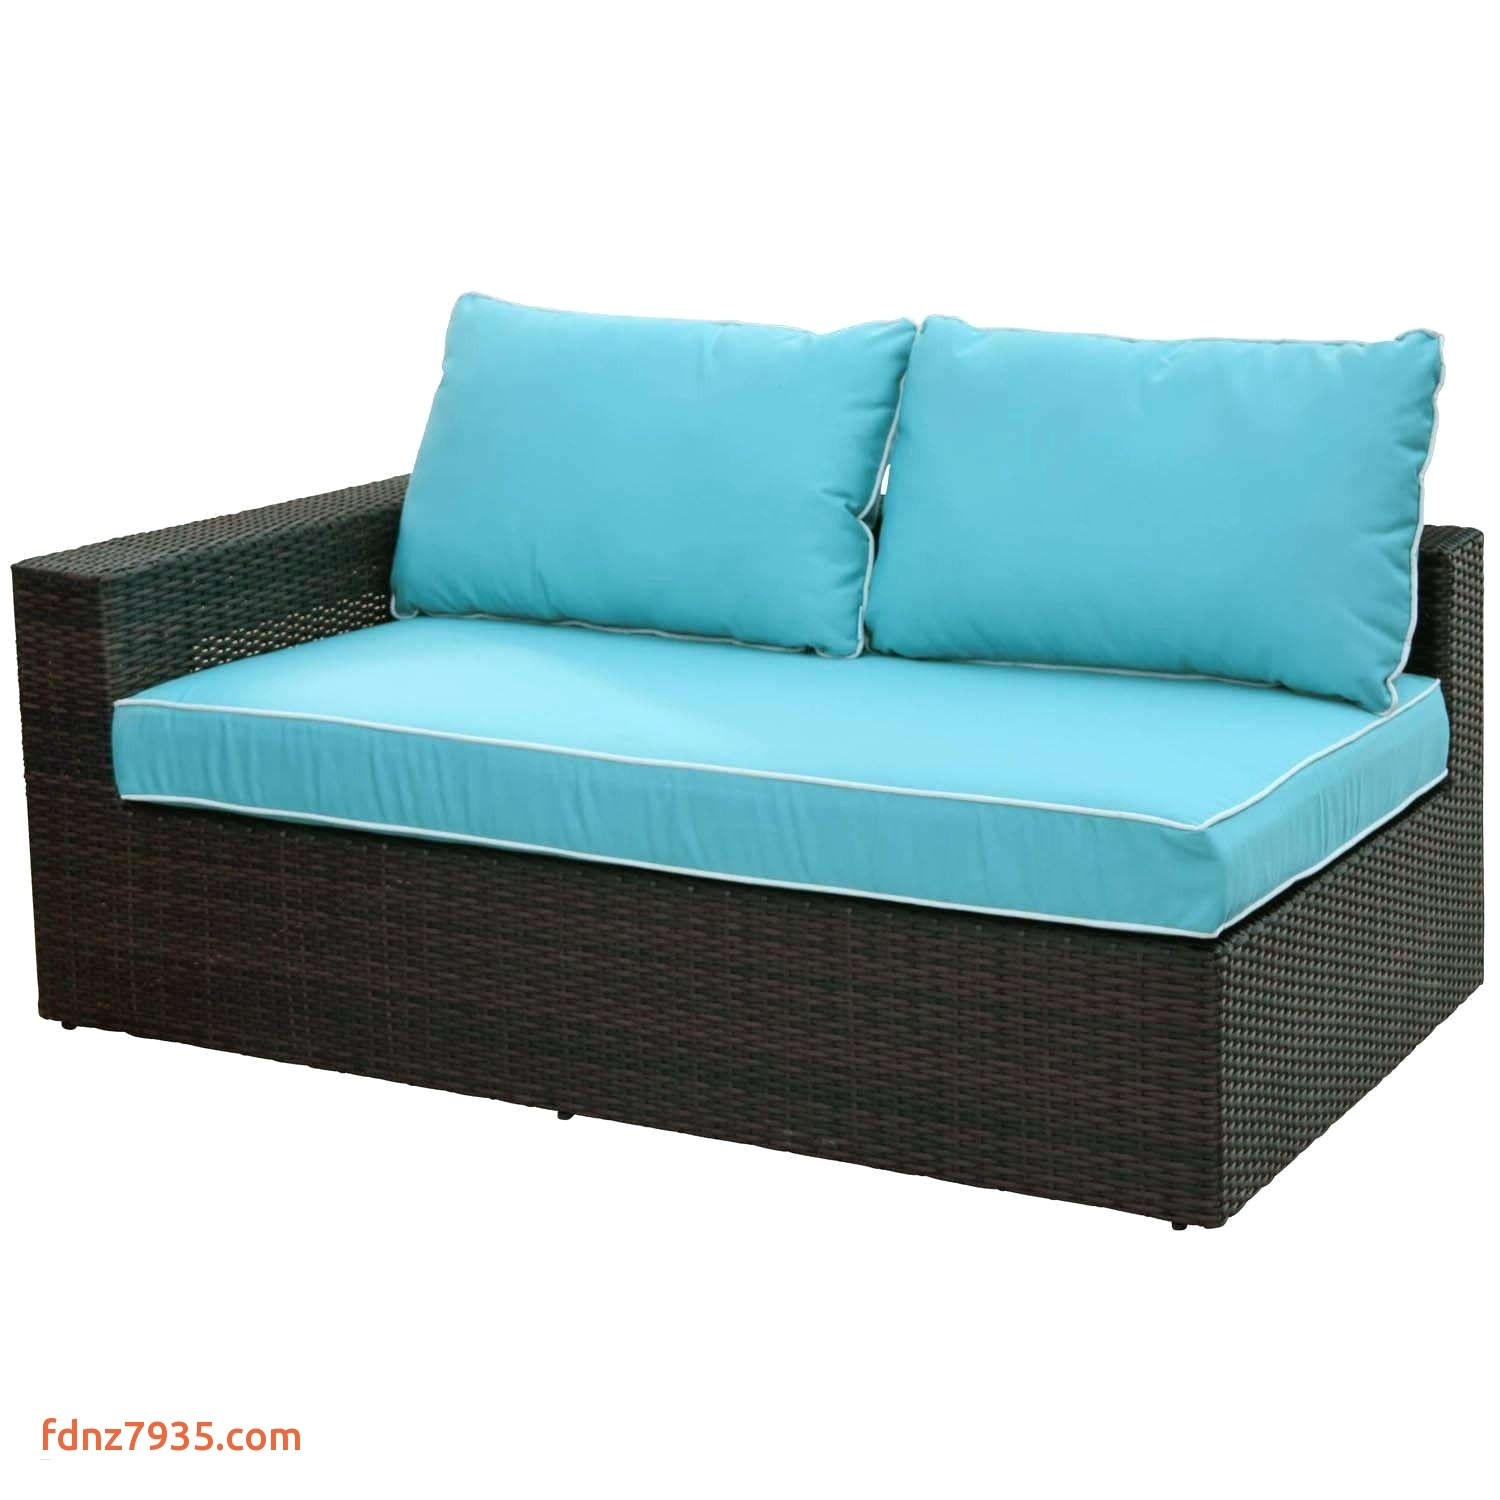 This End Up Replacement Cushions Sale Adinaporter